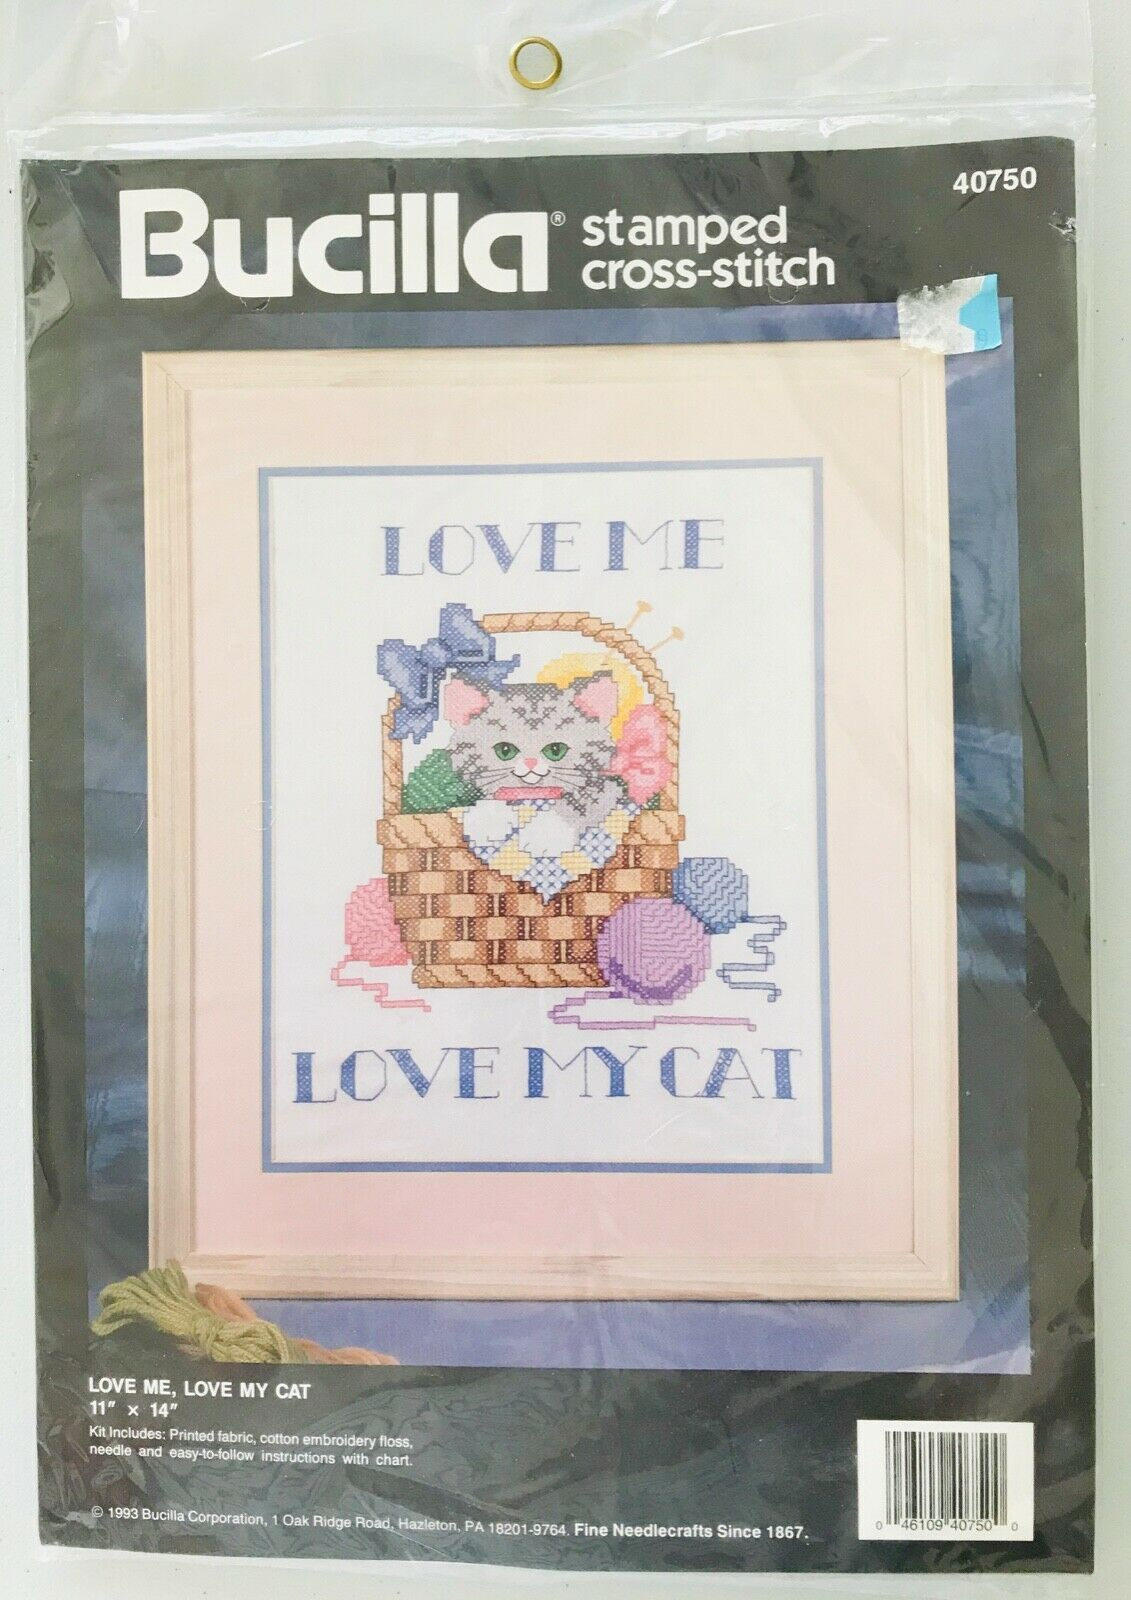 Bucilla 40750 Love Me Love My Cat Stamped Cross Stitch Kit 1993 NIP 11 x 14""